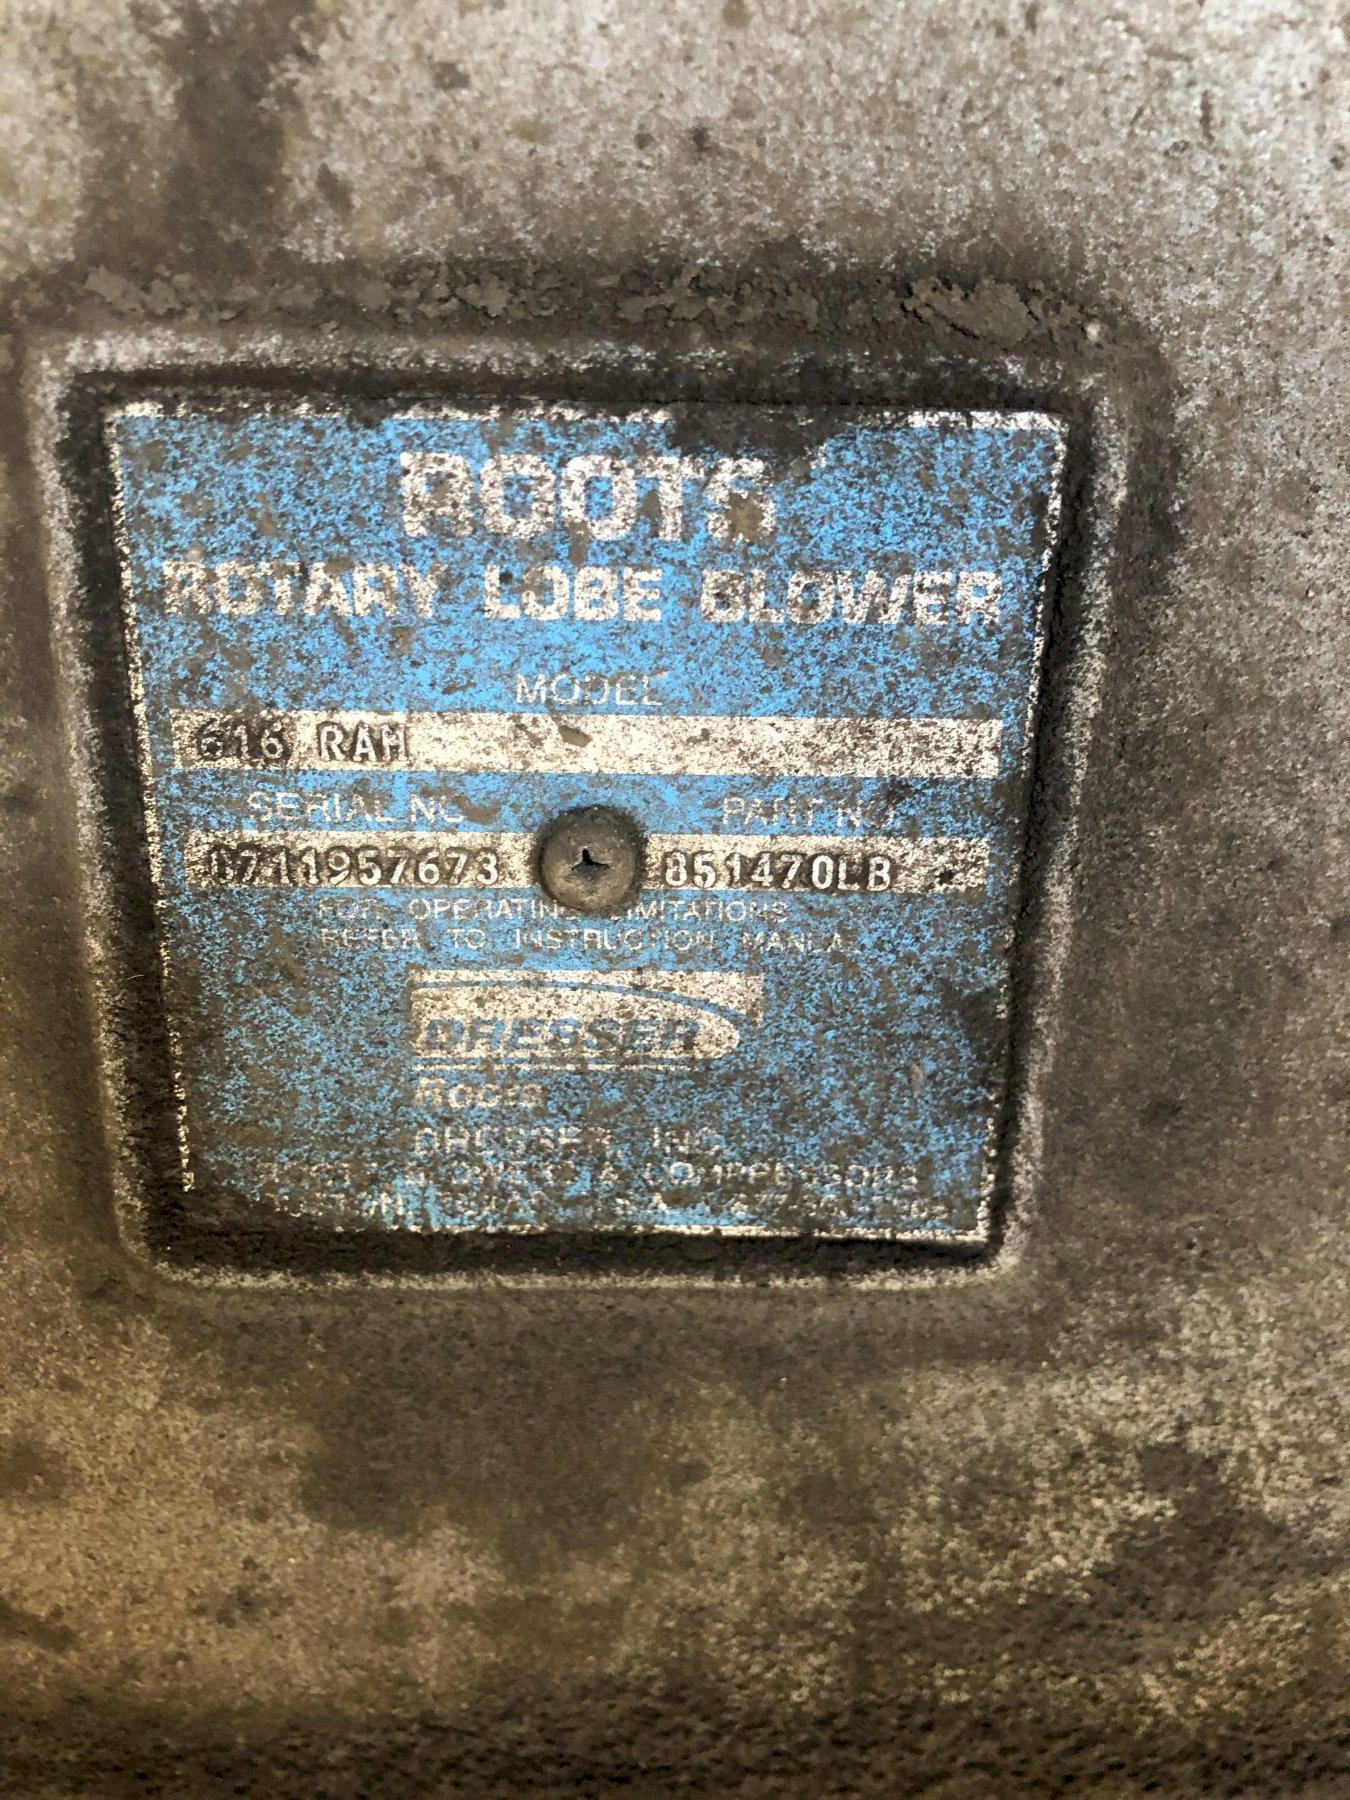 roots model 616 rah blower s/n 1711957673 and approx. 125 hp motor